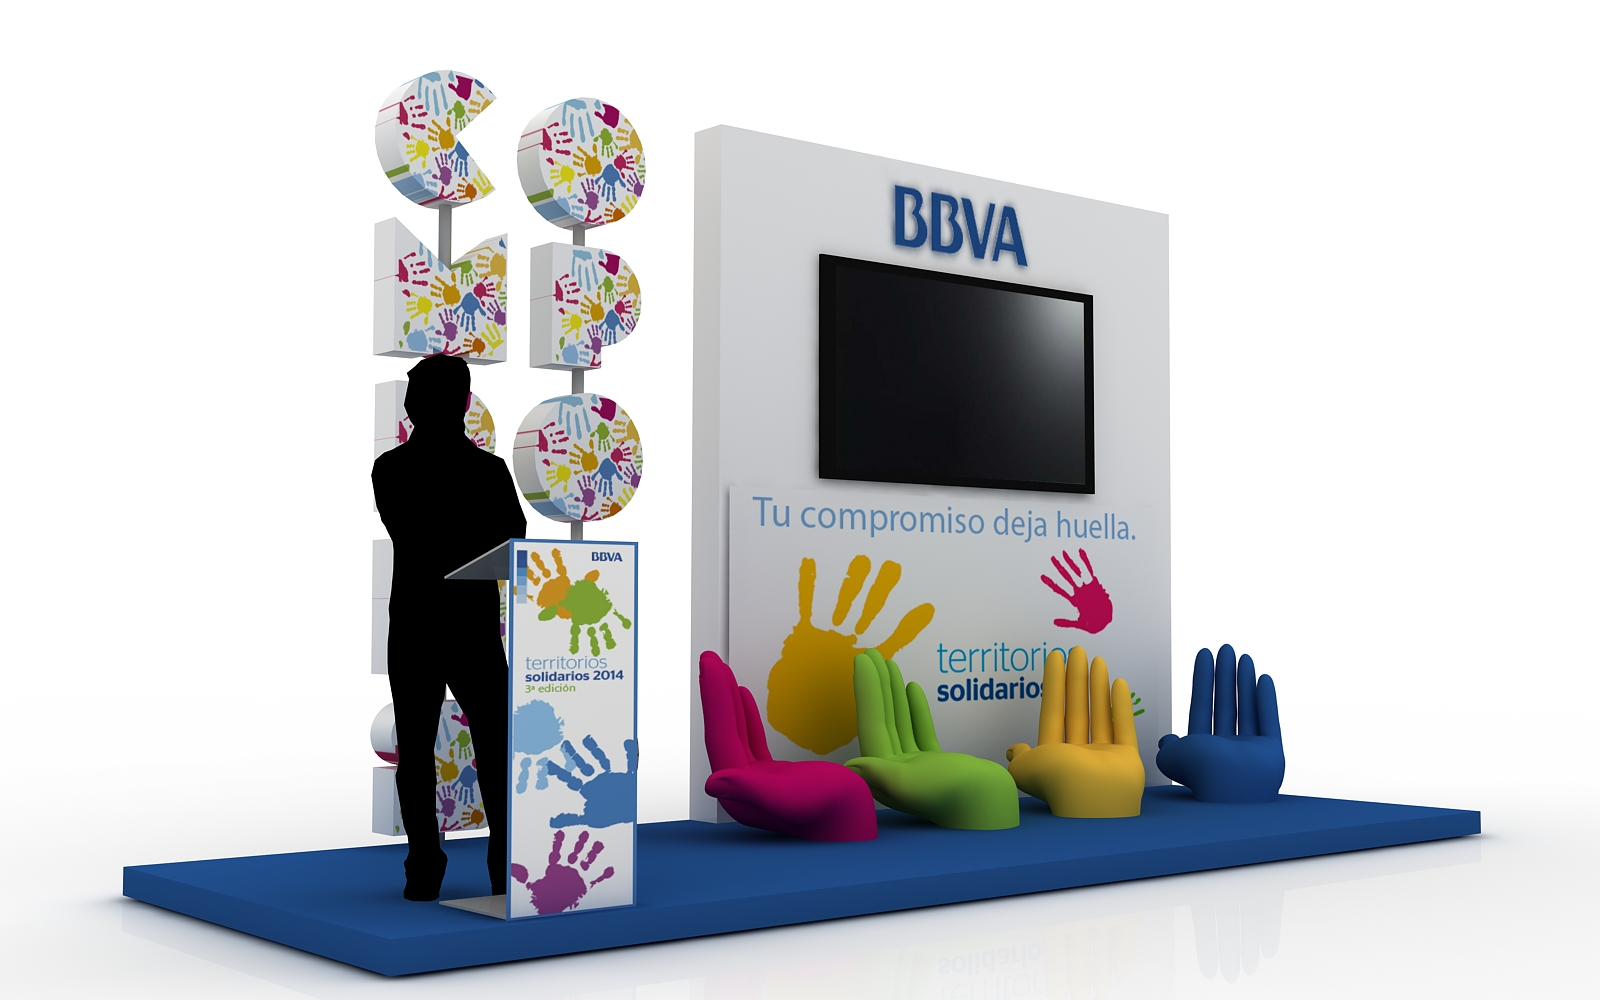 BBVA roadshow